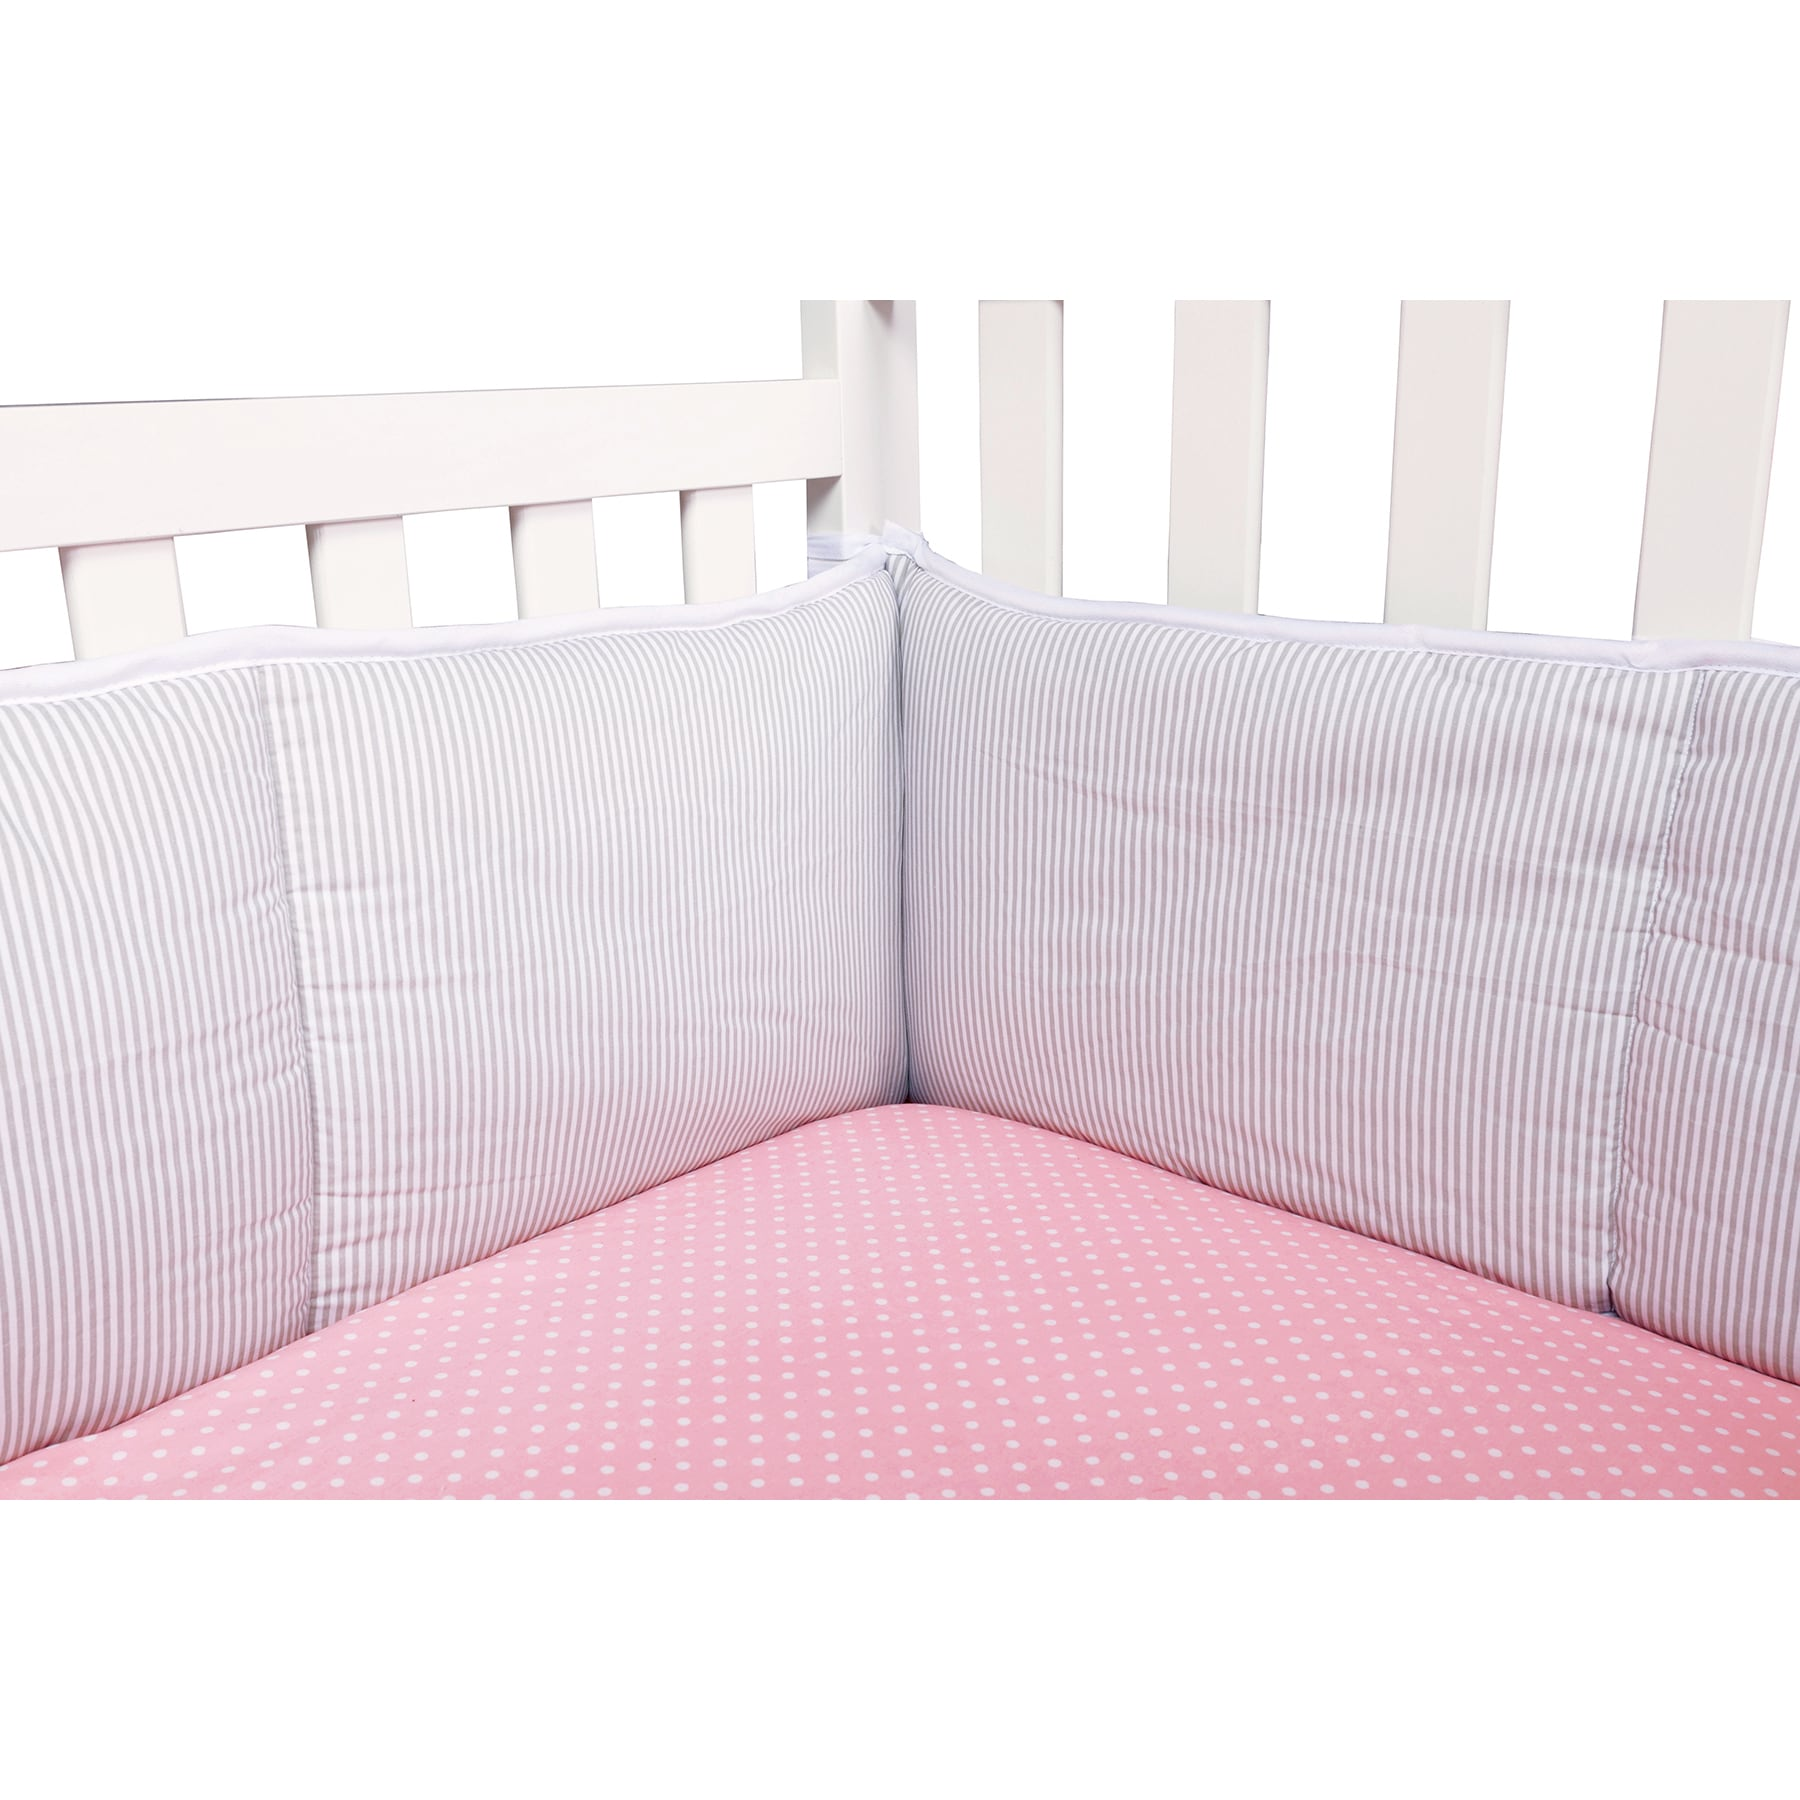 cribshield crib full white bumpers mesh dp liner amazon breathablebaby com baby coverage